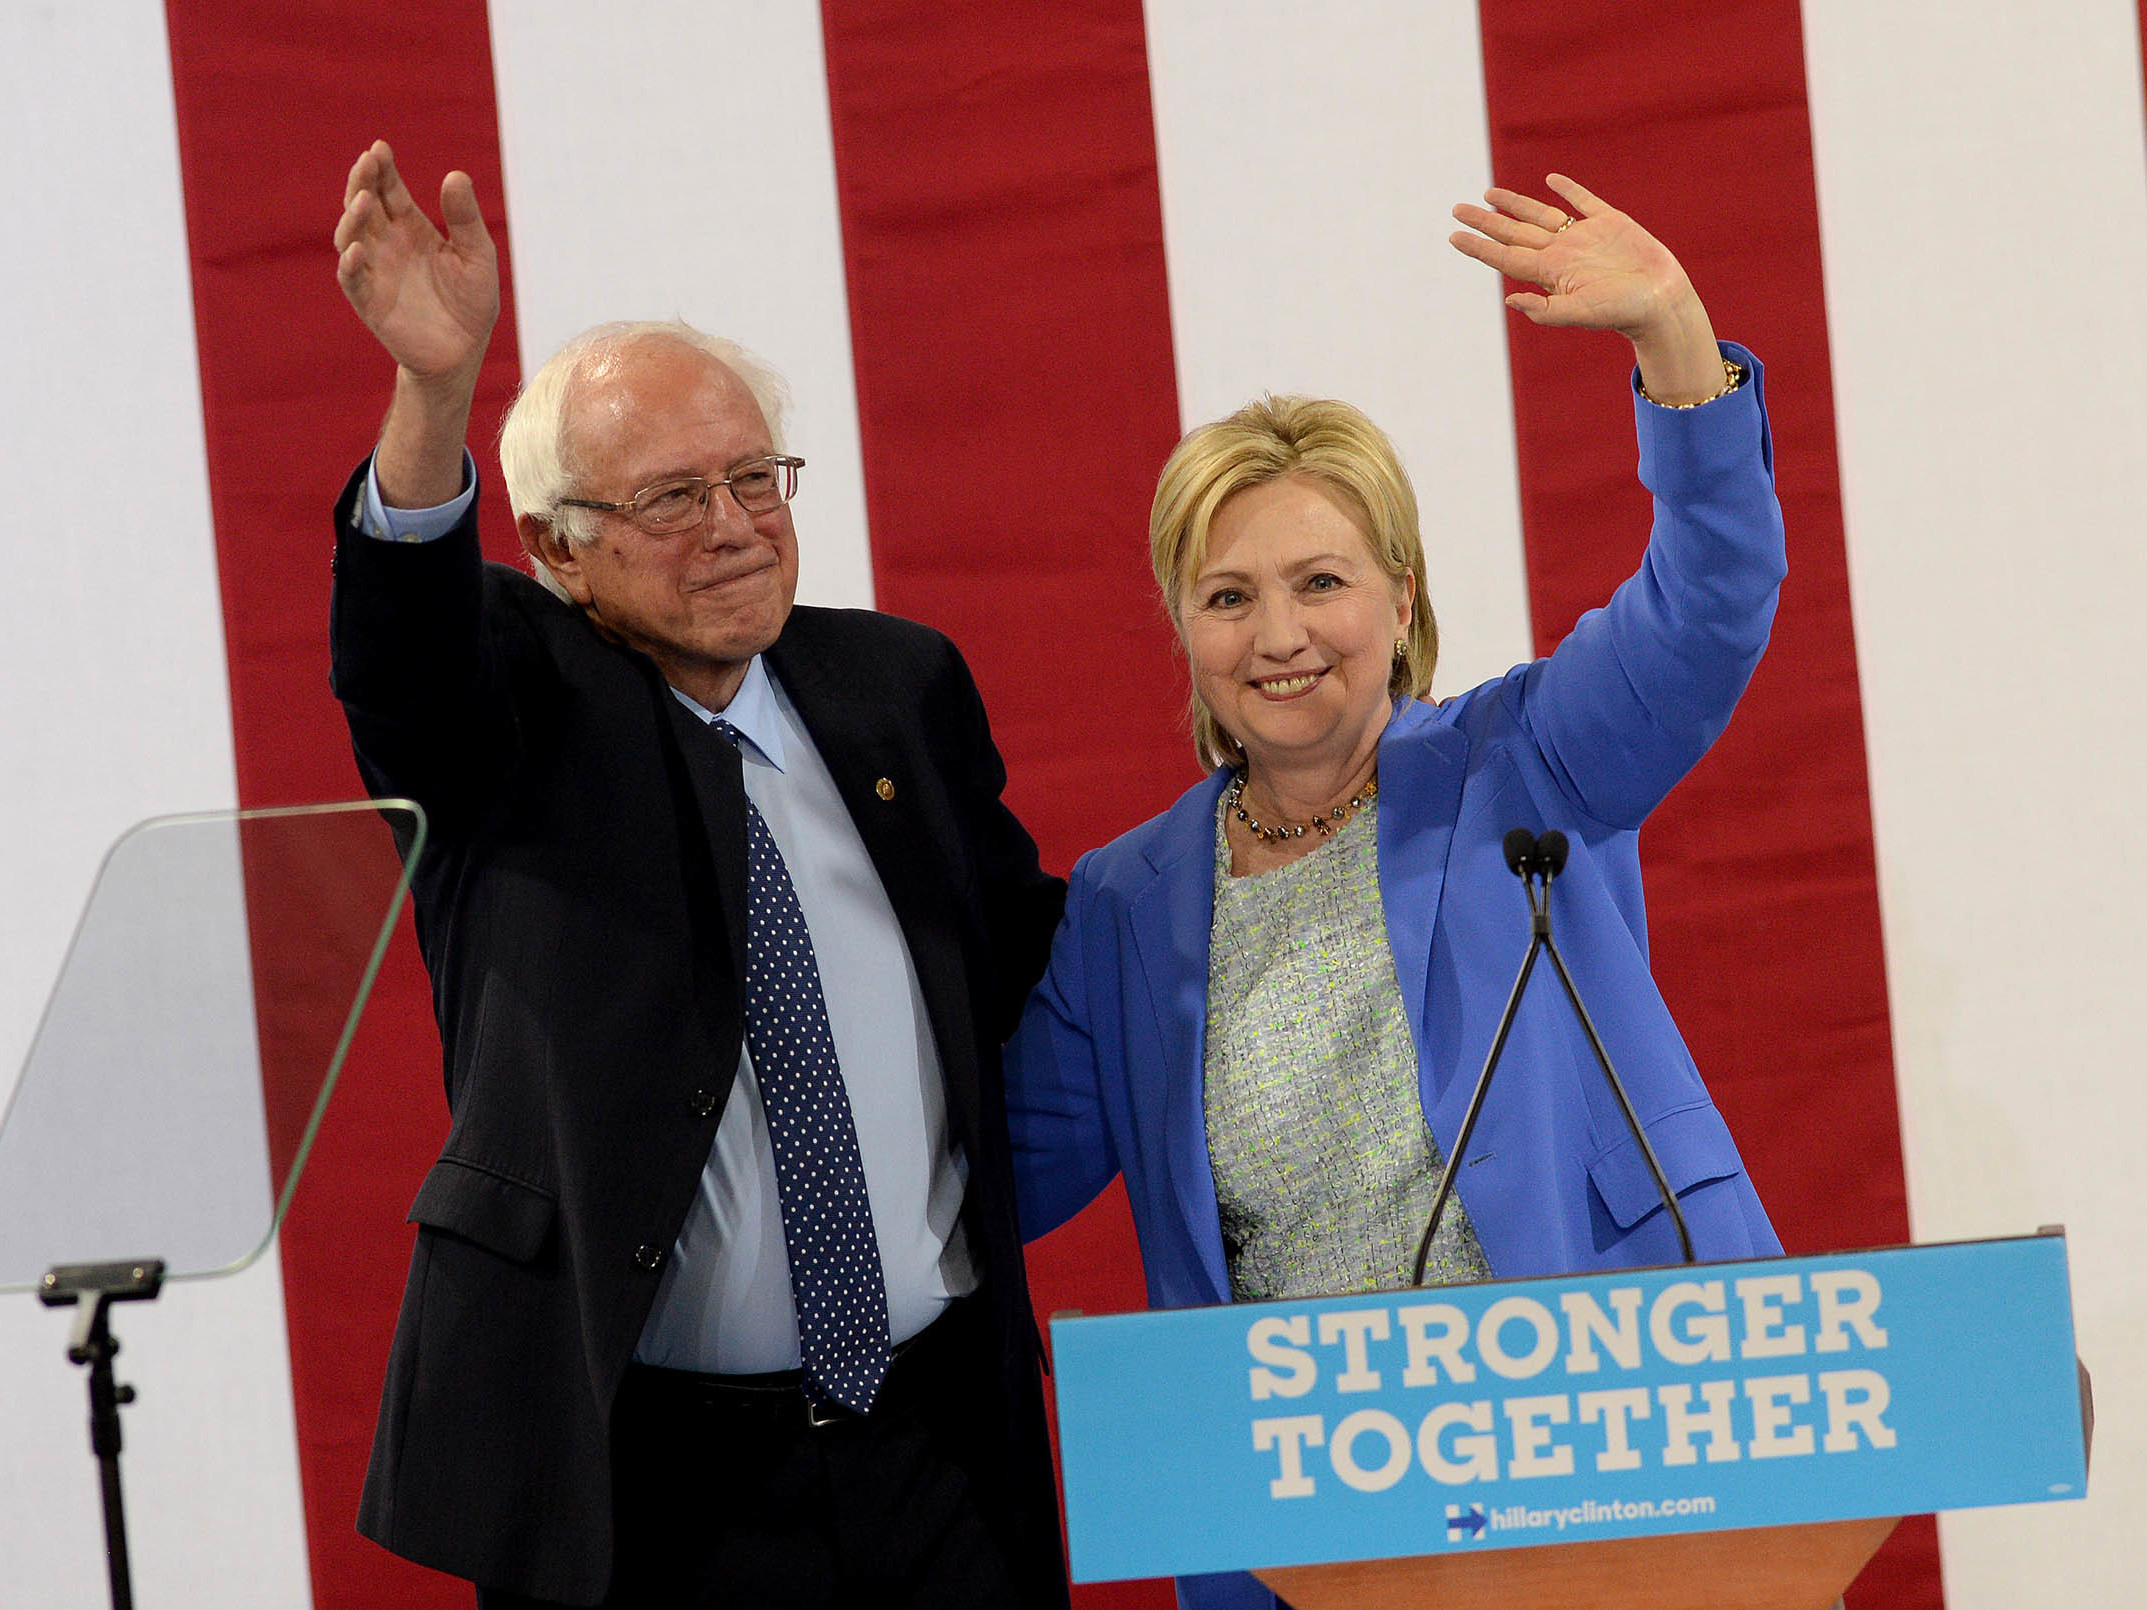 Sen. Bernie Sanders, I-Vt Bernie Sanders and Presumptive Democratic presidential nominee Hillary Clinton appear together at Portsmouth, N.H. High School where Sanders endorsed Clinton for president of the United States. (Photo by Darren McCollester/Getty Images)